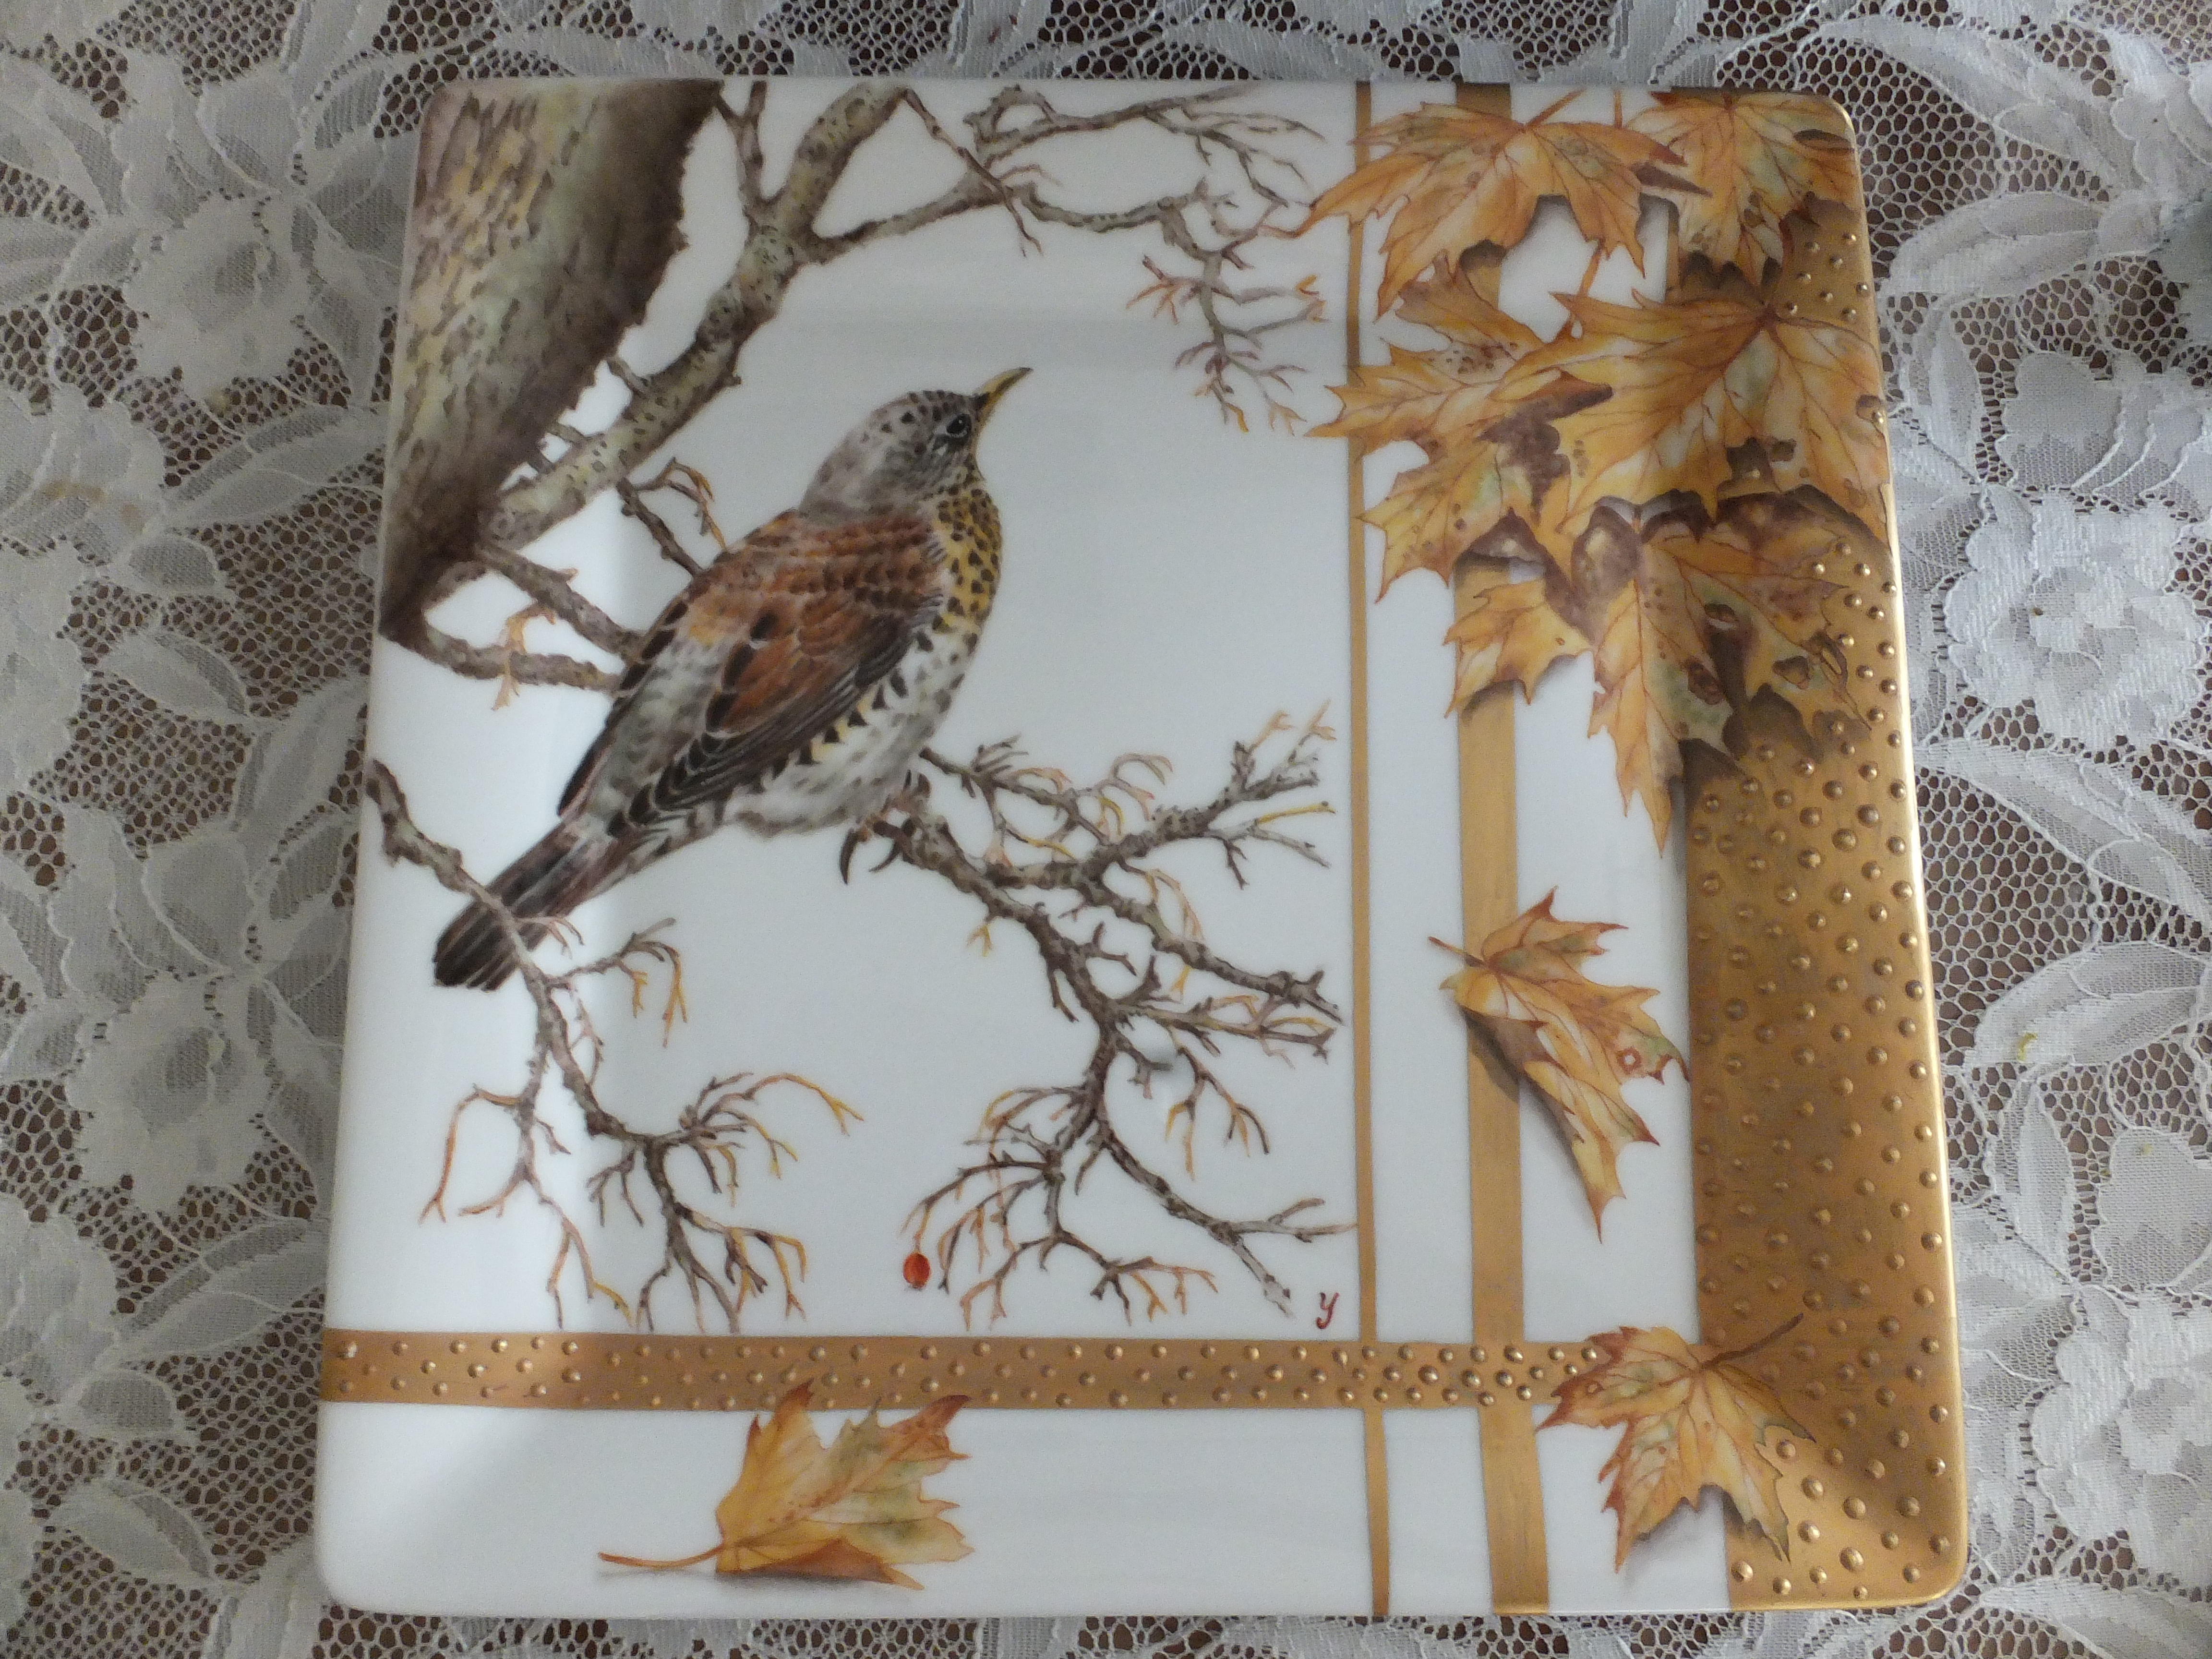 competition | My porcelain painting blog